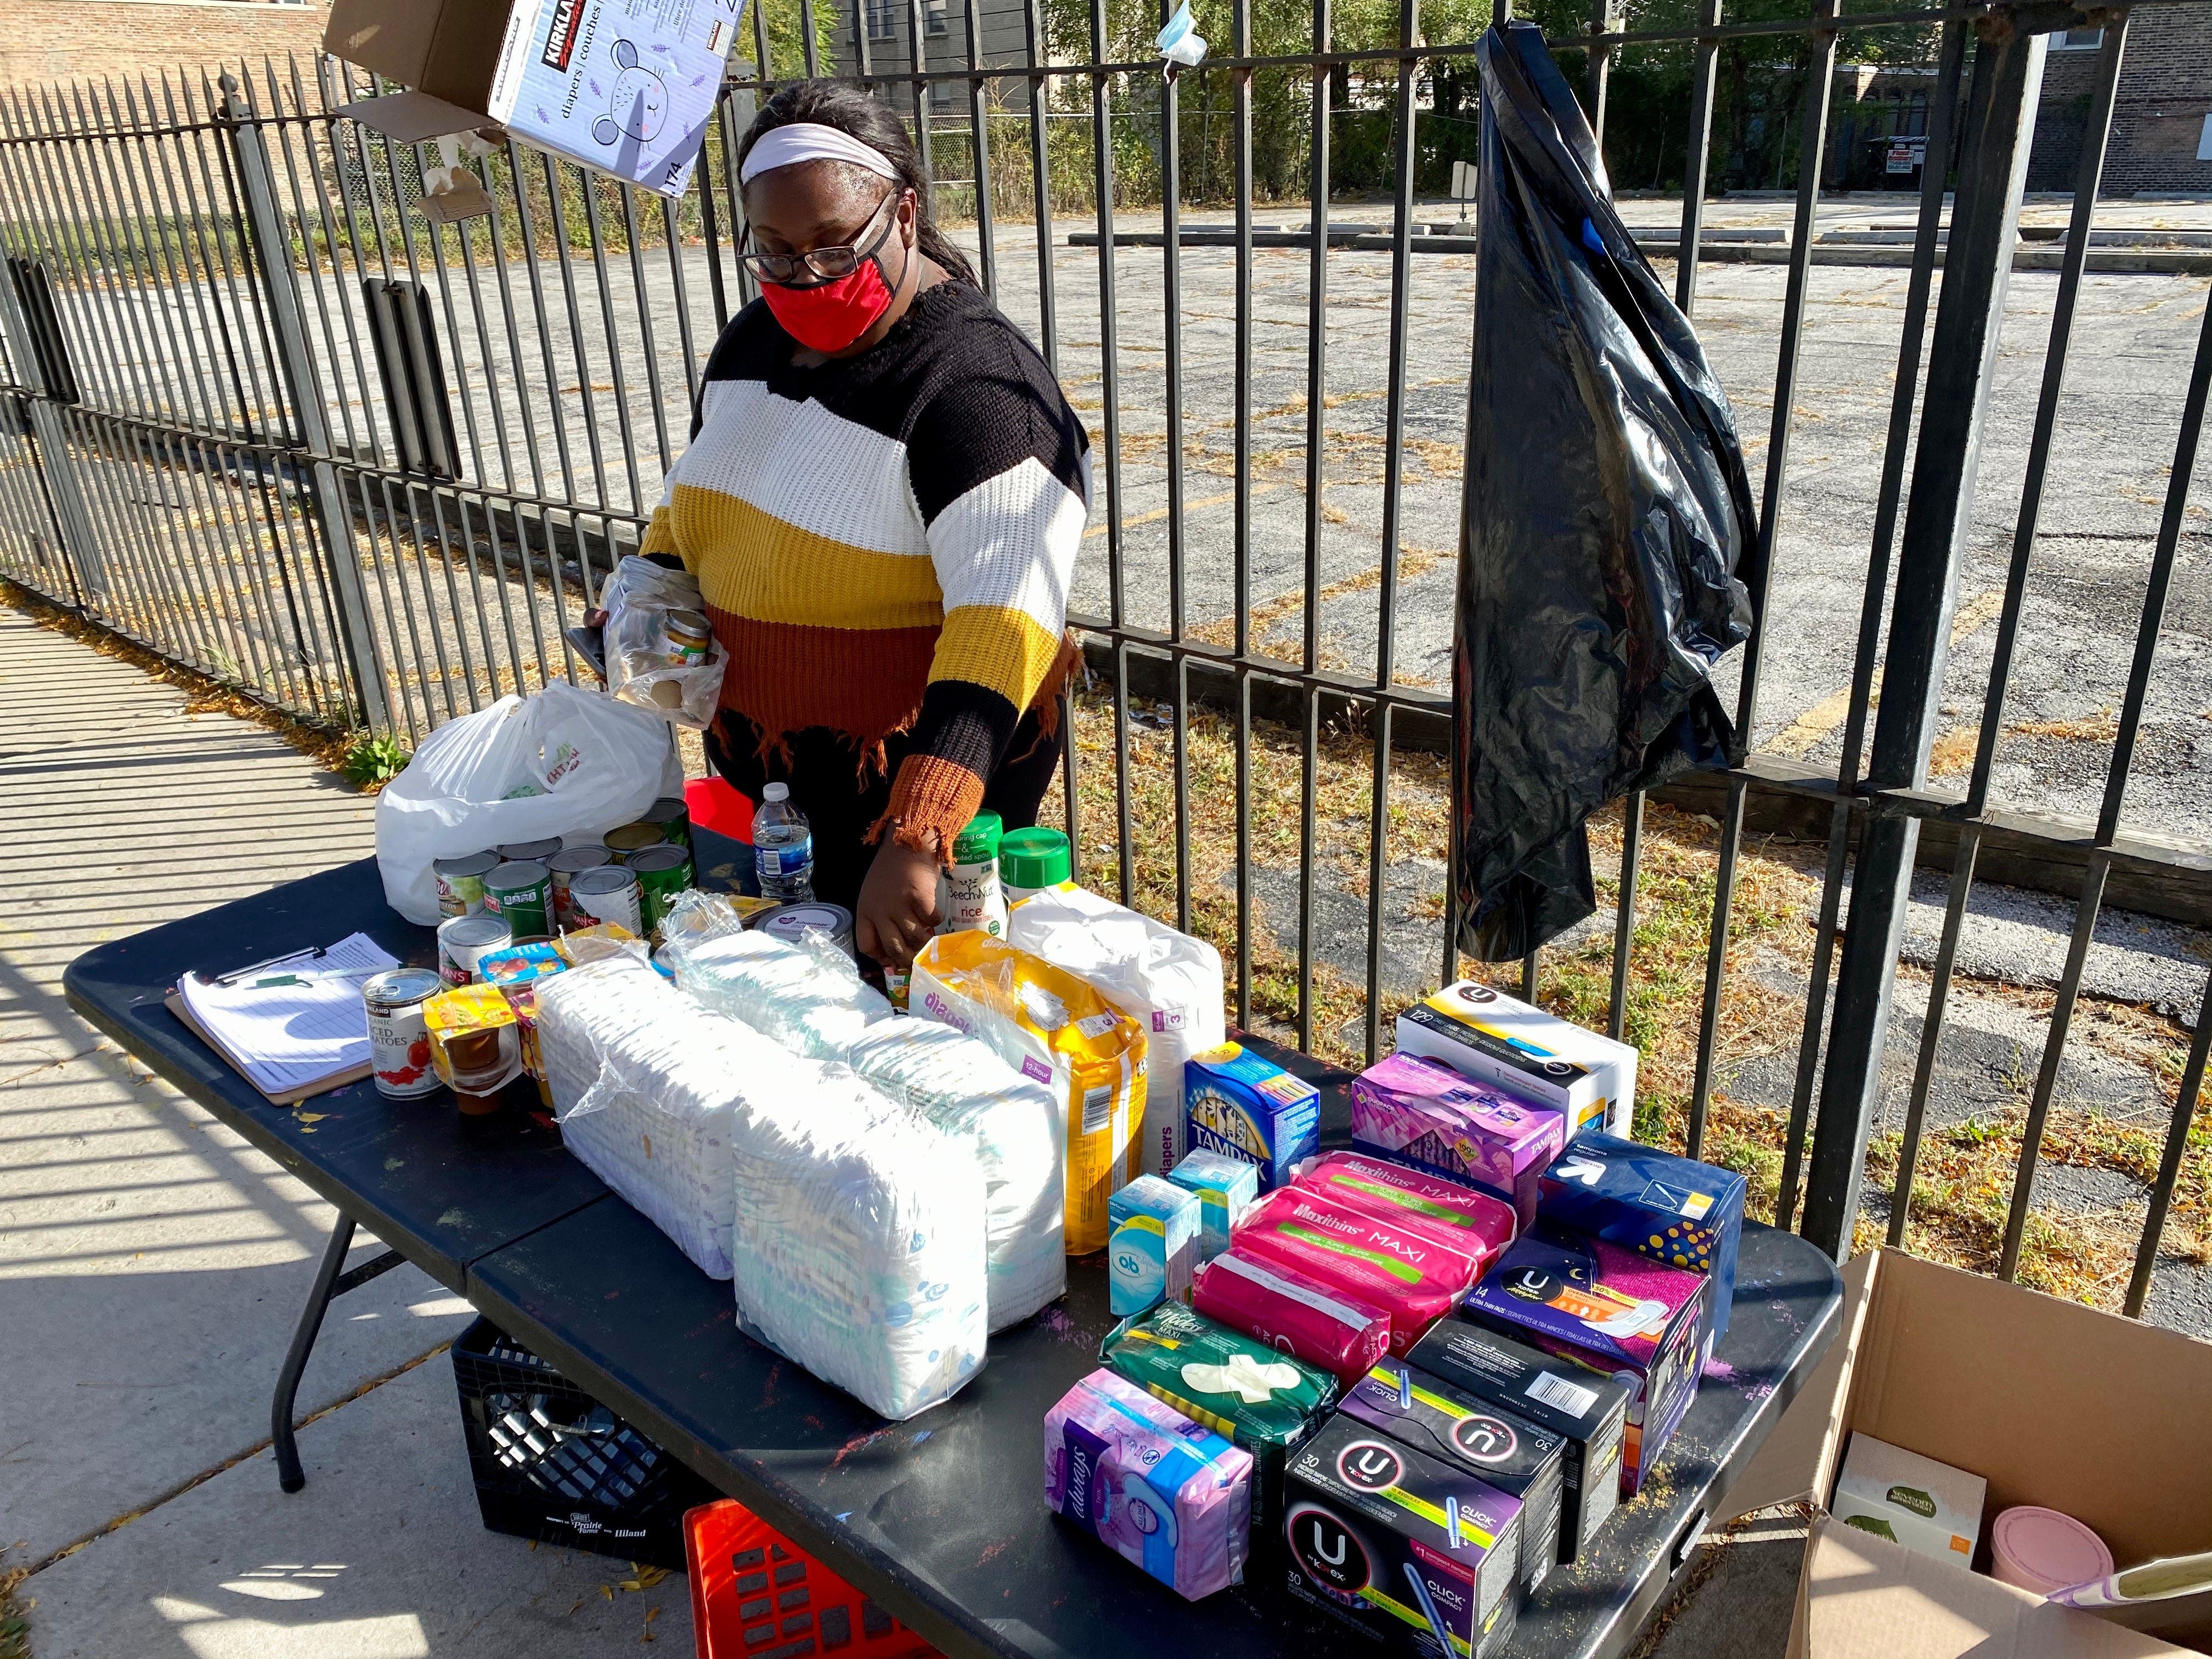 Juanita Tennyson, 23, gives out donated food and household supplies in the South Shore neighborhood on the South Side of Chicago on  Oct. 14., 2020.